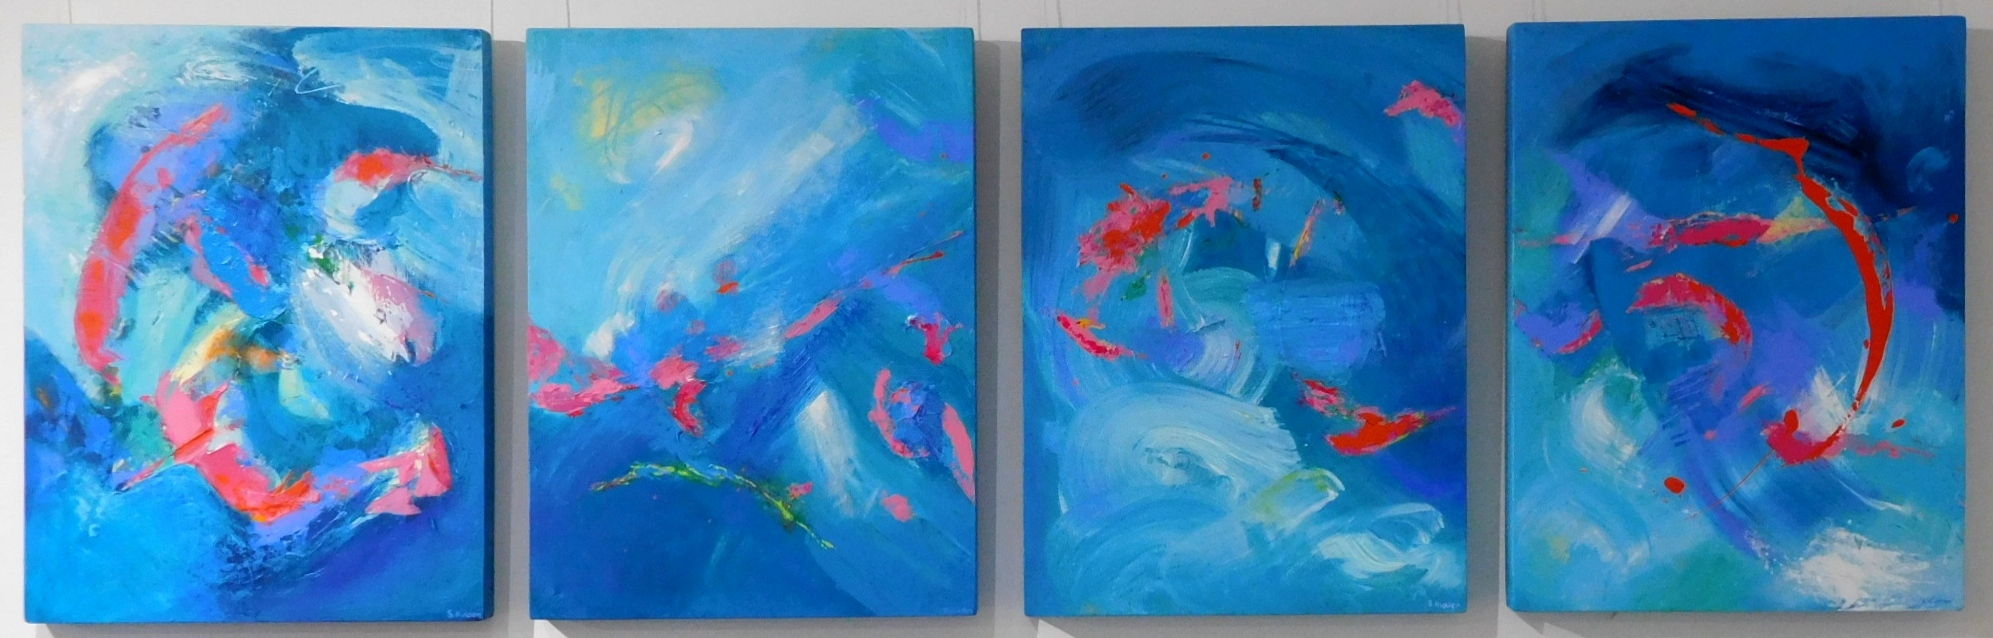 Colourful acrylic abstract paintings 'Music of the Reef' by Stella Hidden